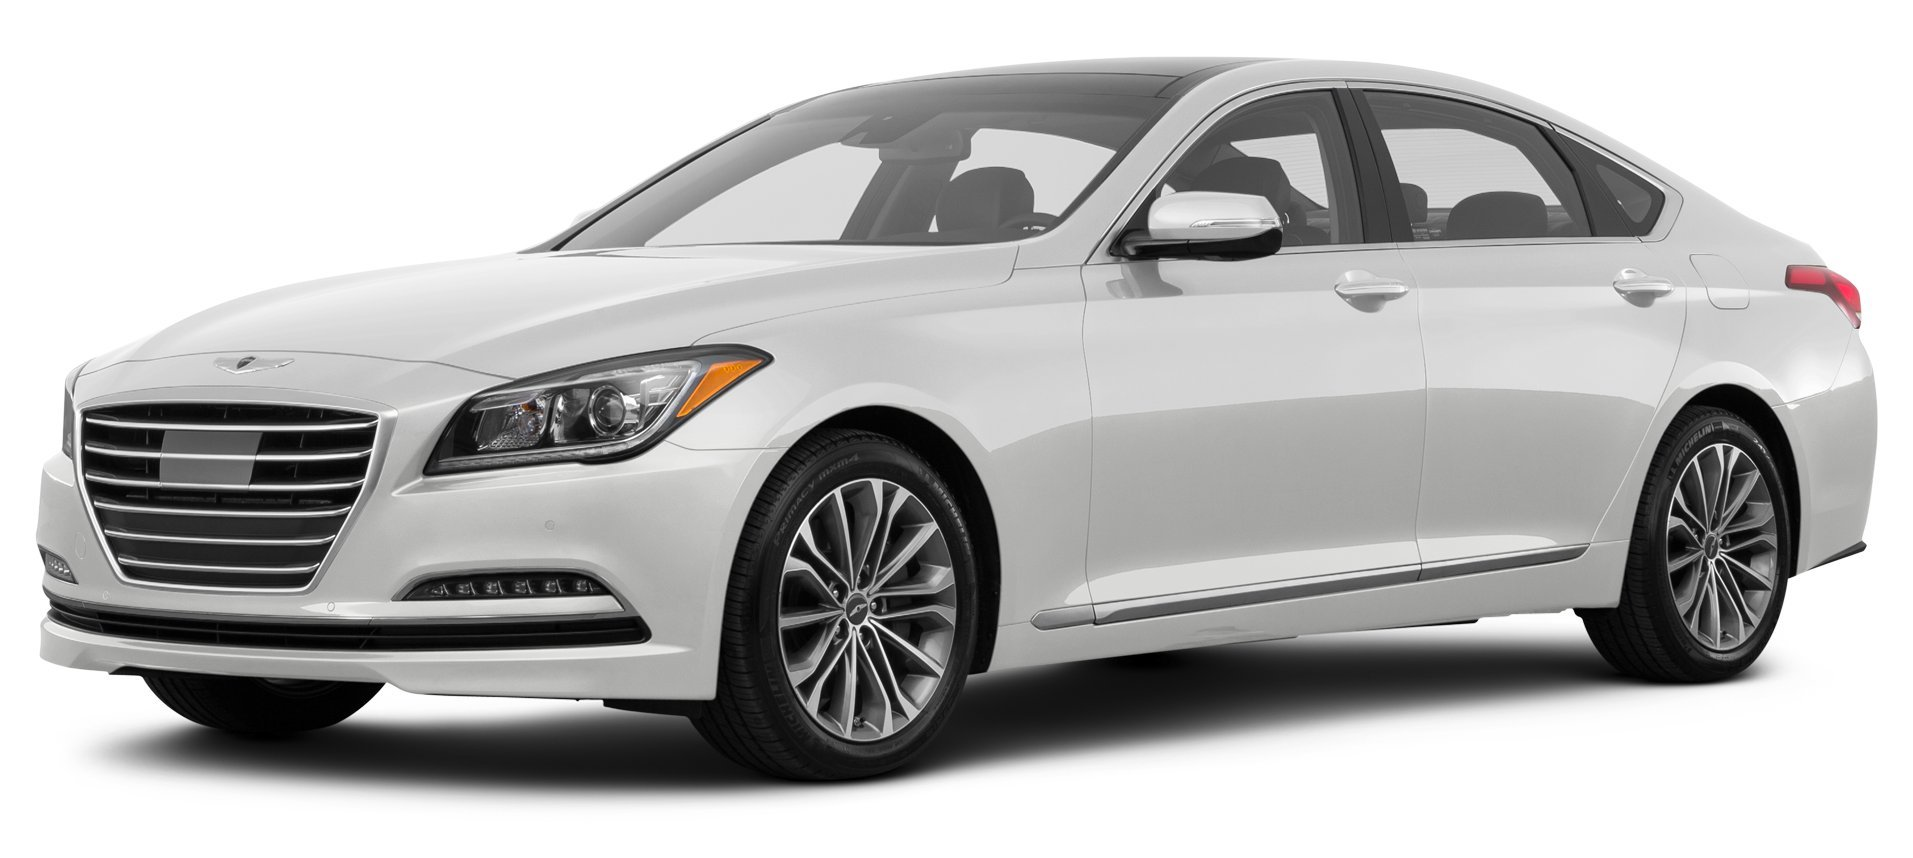 Elegant 2016 Hyundai Genesis 3.8L, 4 Door Sedan V6 All Wheel Drive ...